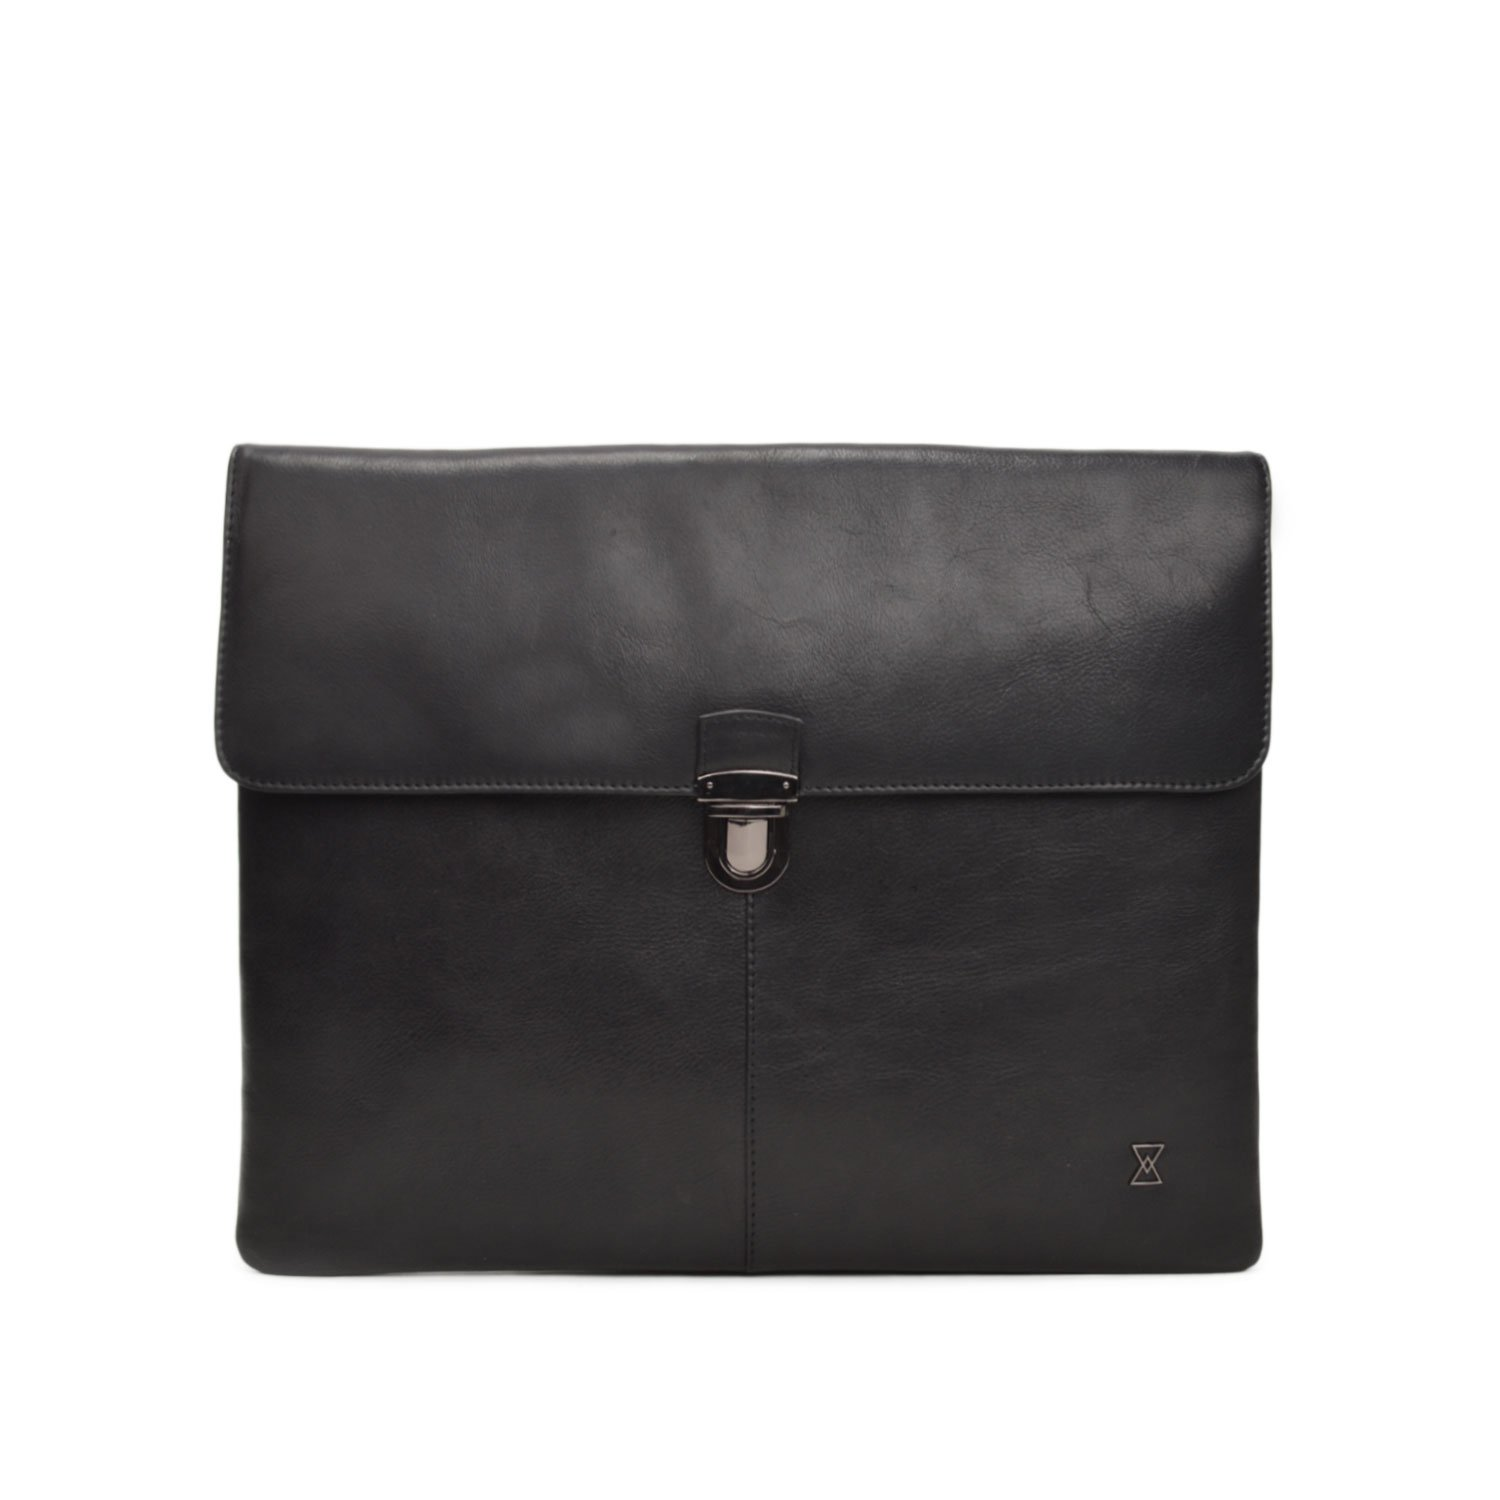 TERRACOMO New York - Wallstreet - Italian Leather Business Portfolio Brief for 13'' Laptops & Documents (Italian Black VT Leather)